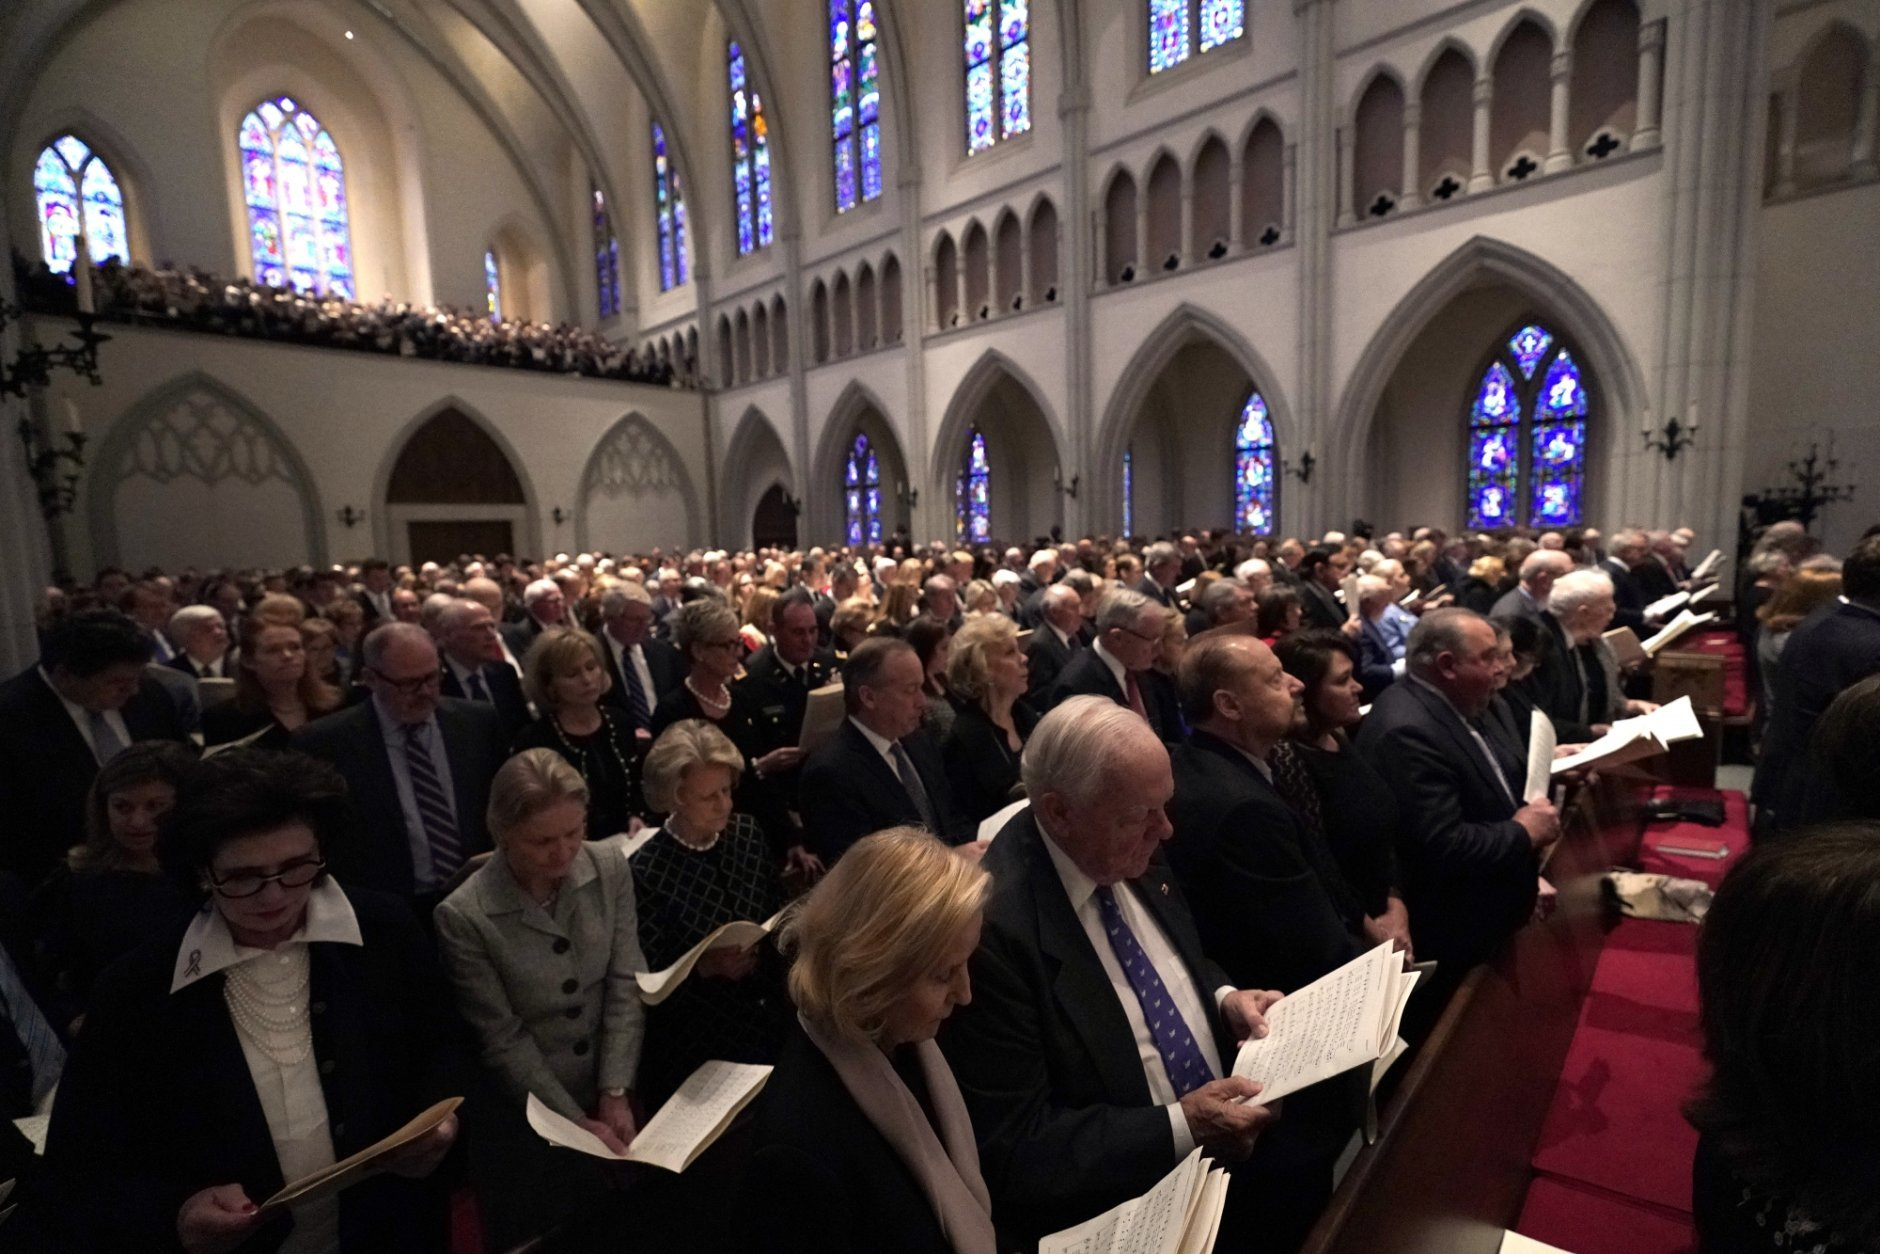 Family and friends attend a funeral service for former President George H.W. Bush at St. Martin's Episcopal Church Thursday, Dec. 6, 2018, in Houston. (AP Photo/David J. Phillip, Pool)